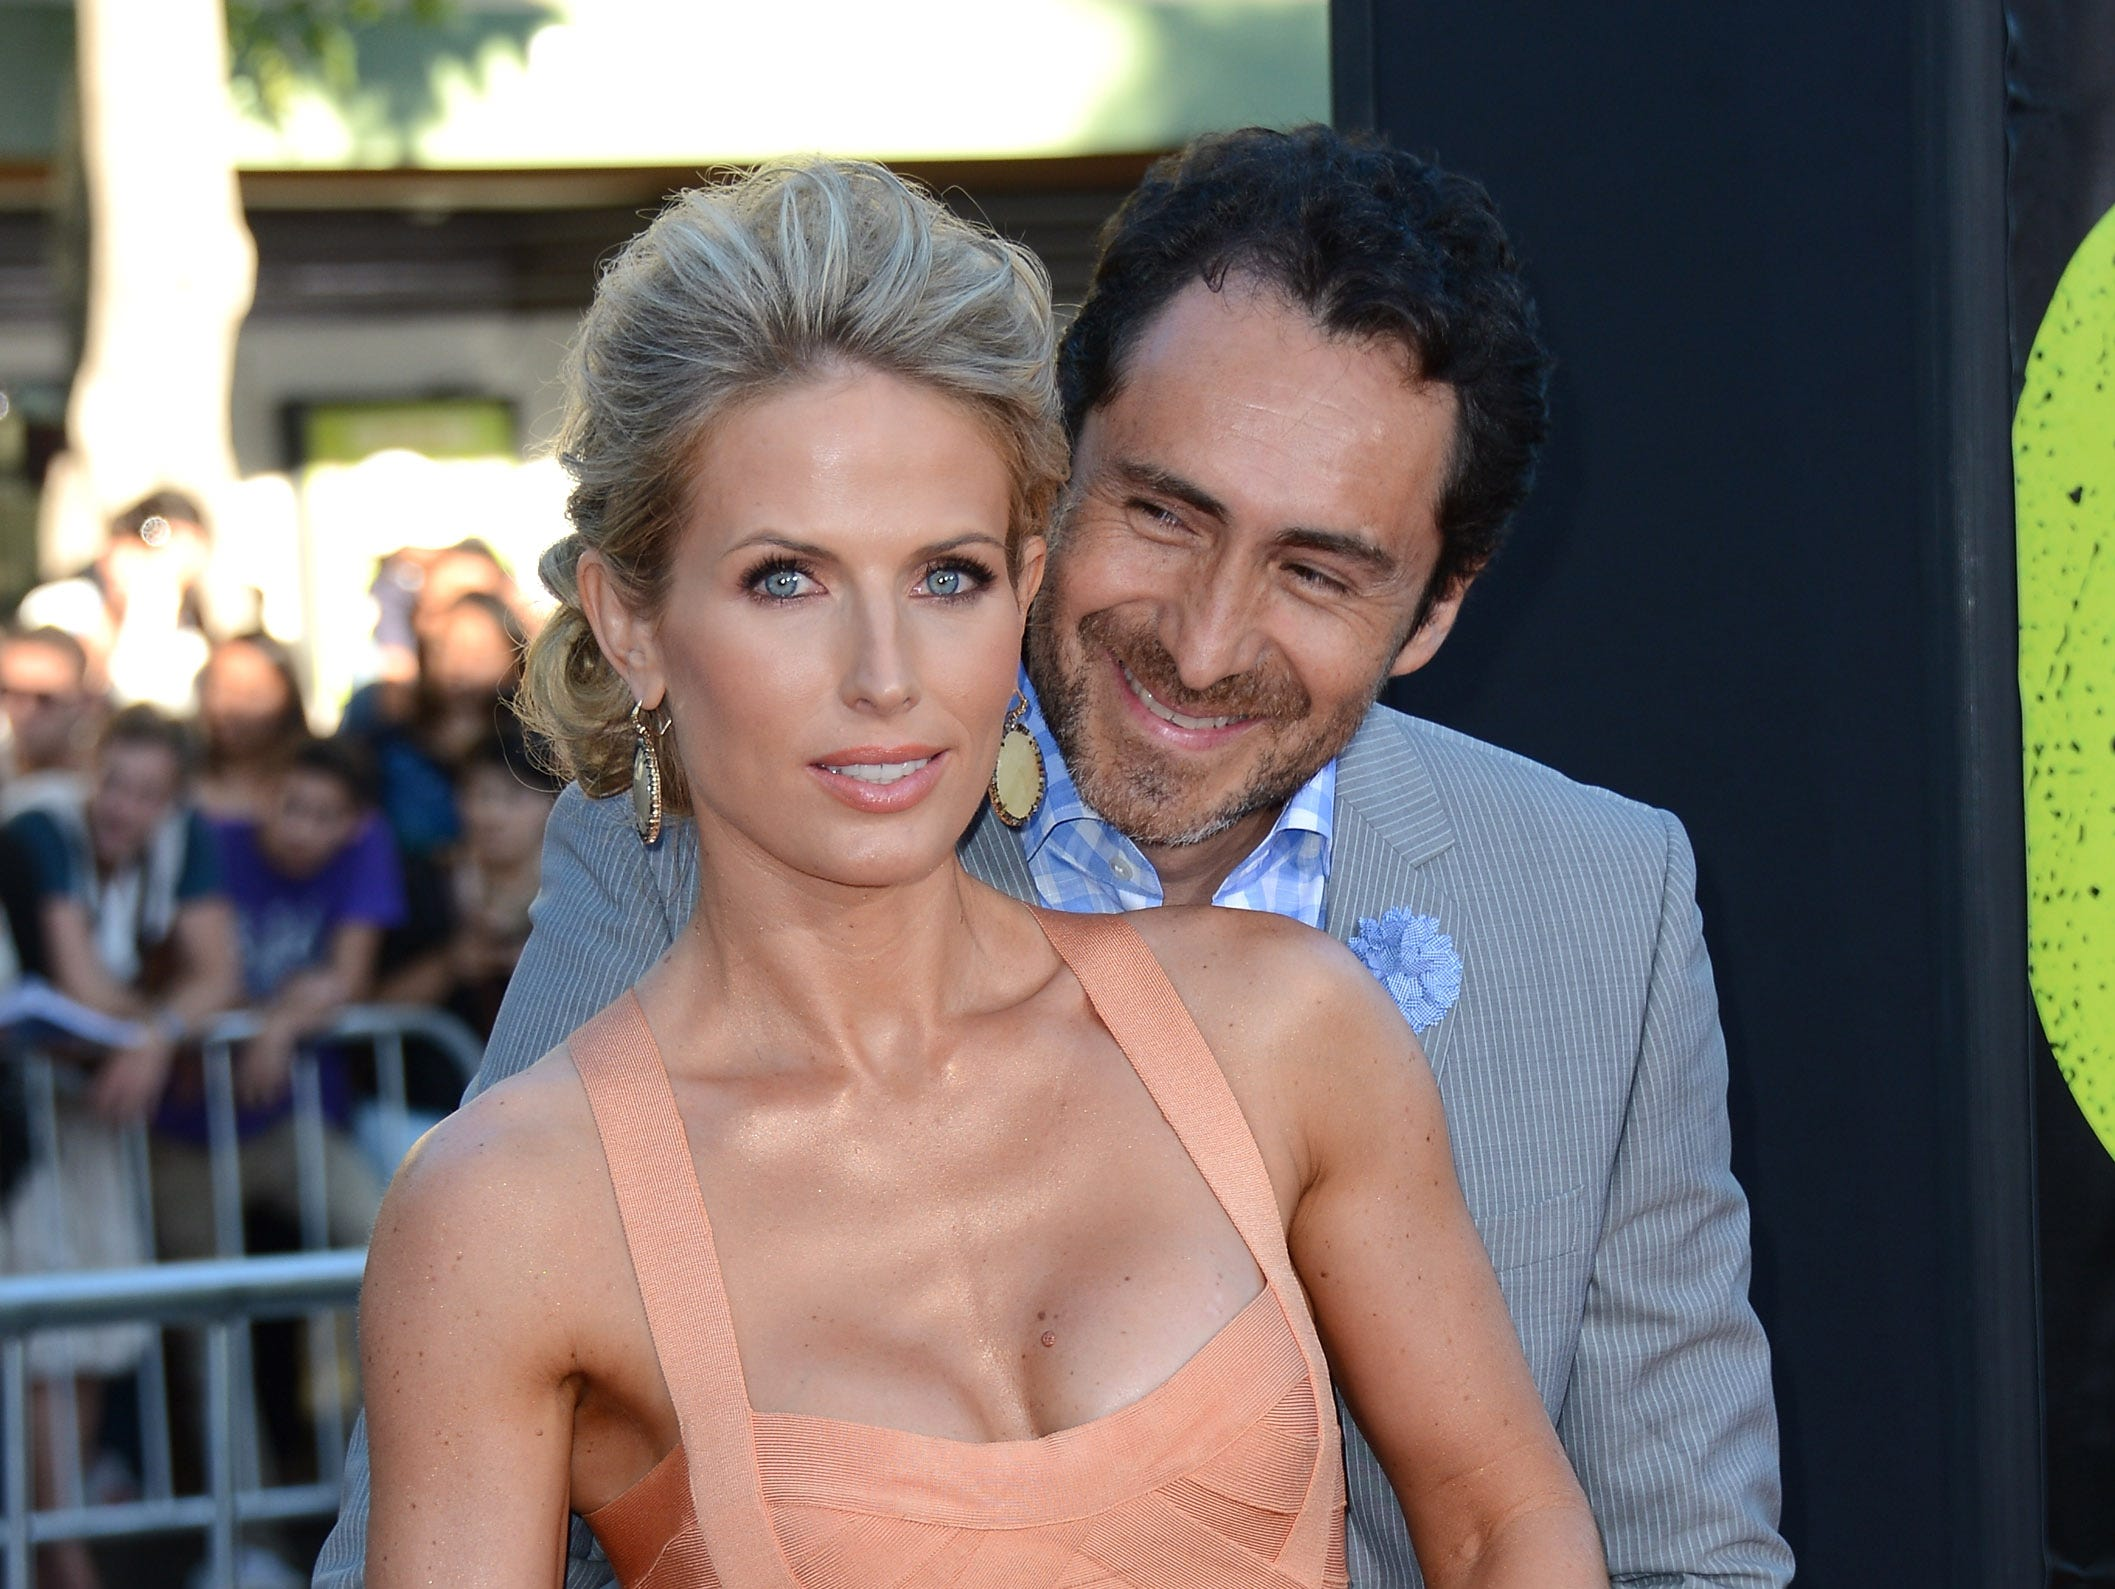 """Stefanie Sherk and Demian Bichir arrive at the premiere of his film """"Savages"""" on June 25, 2012, in Los Angeles, California."""